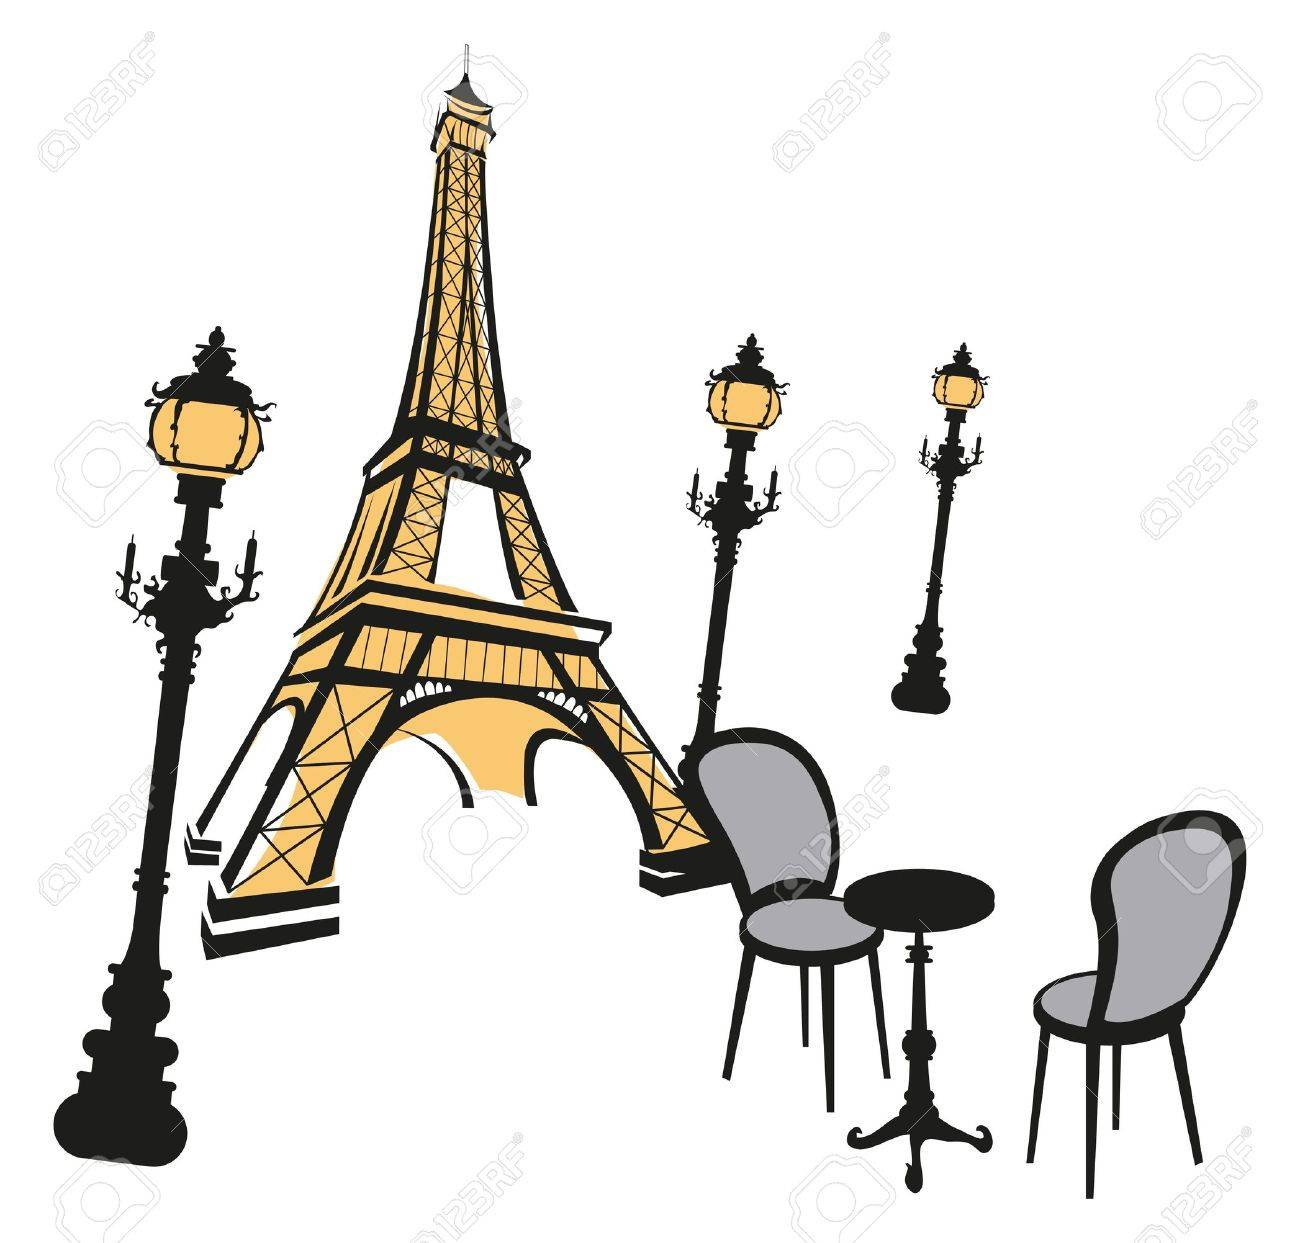 1300x1243 Eiffel Tower Sketch With Street Lights On White Royalty Free